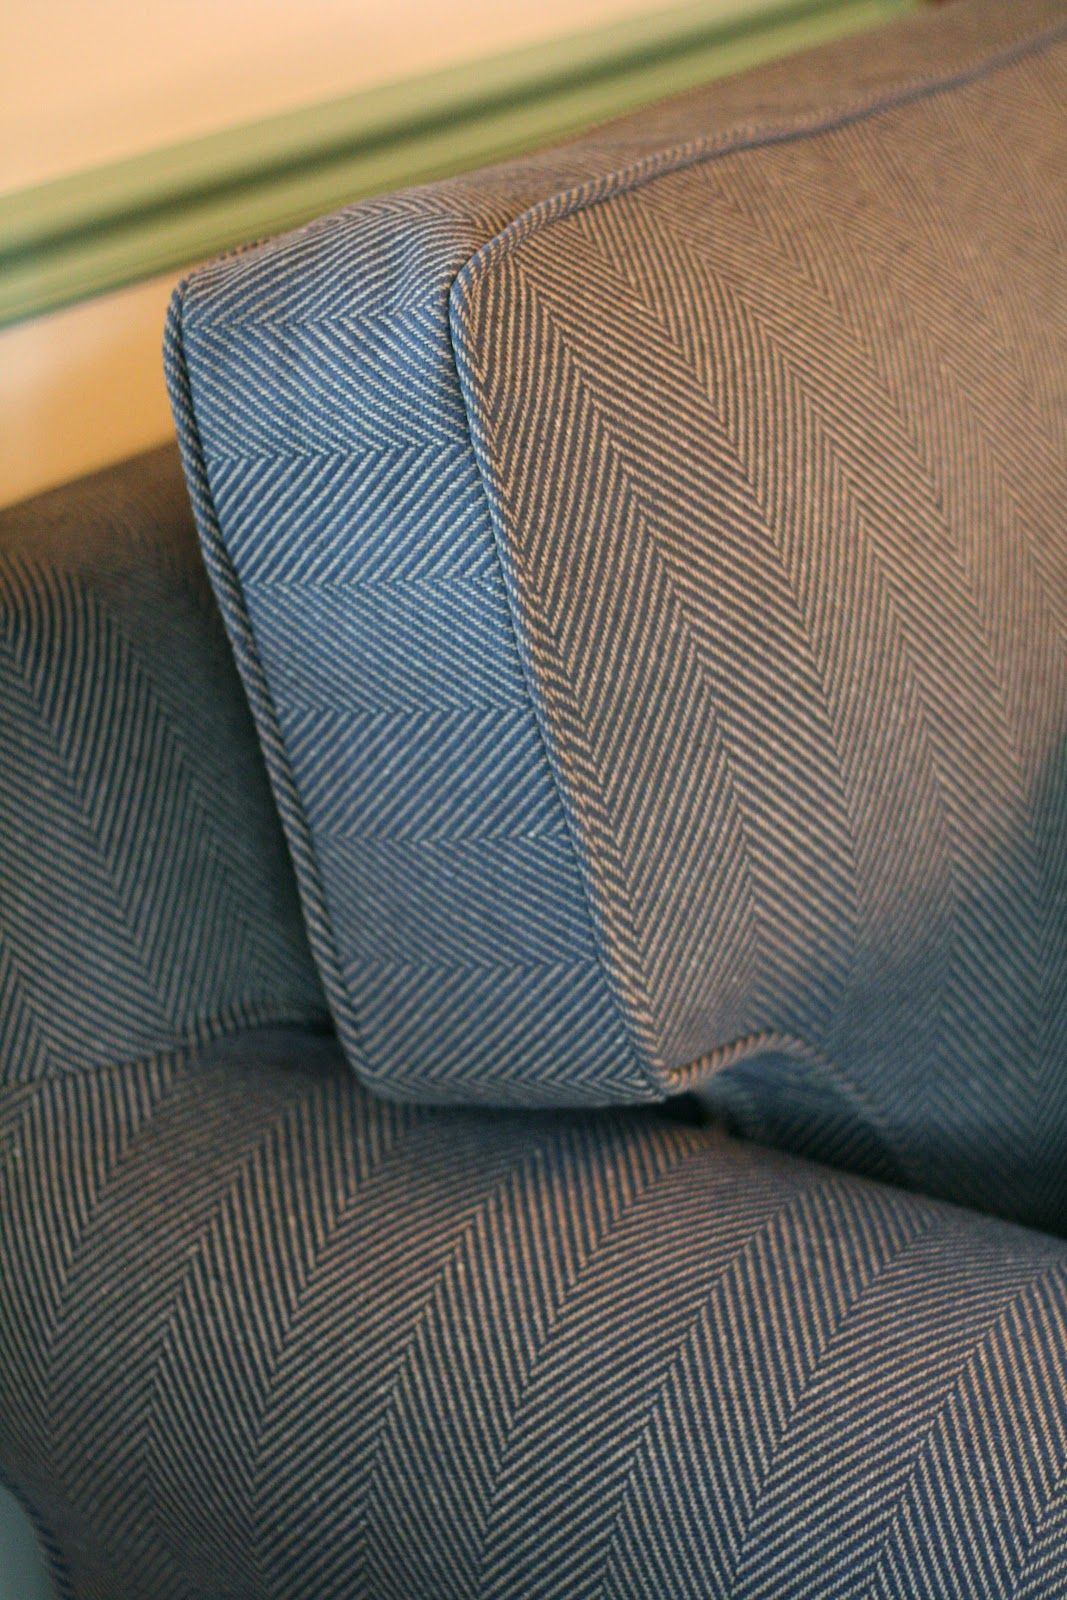 Custom Slipcovers By Shelley Navy Tan Herringbone Couch Slipcover Custom Slipcovers Slip Covers Couch Couch Fabric